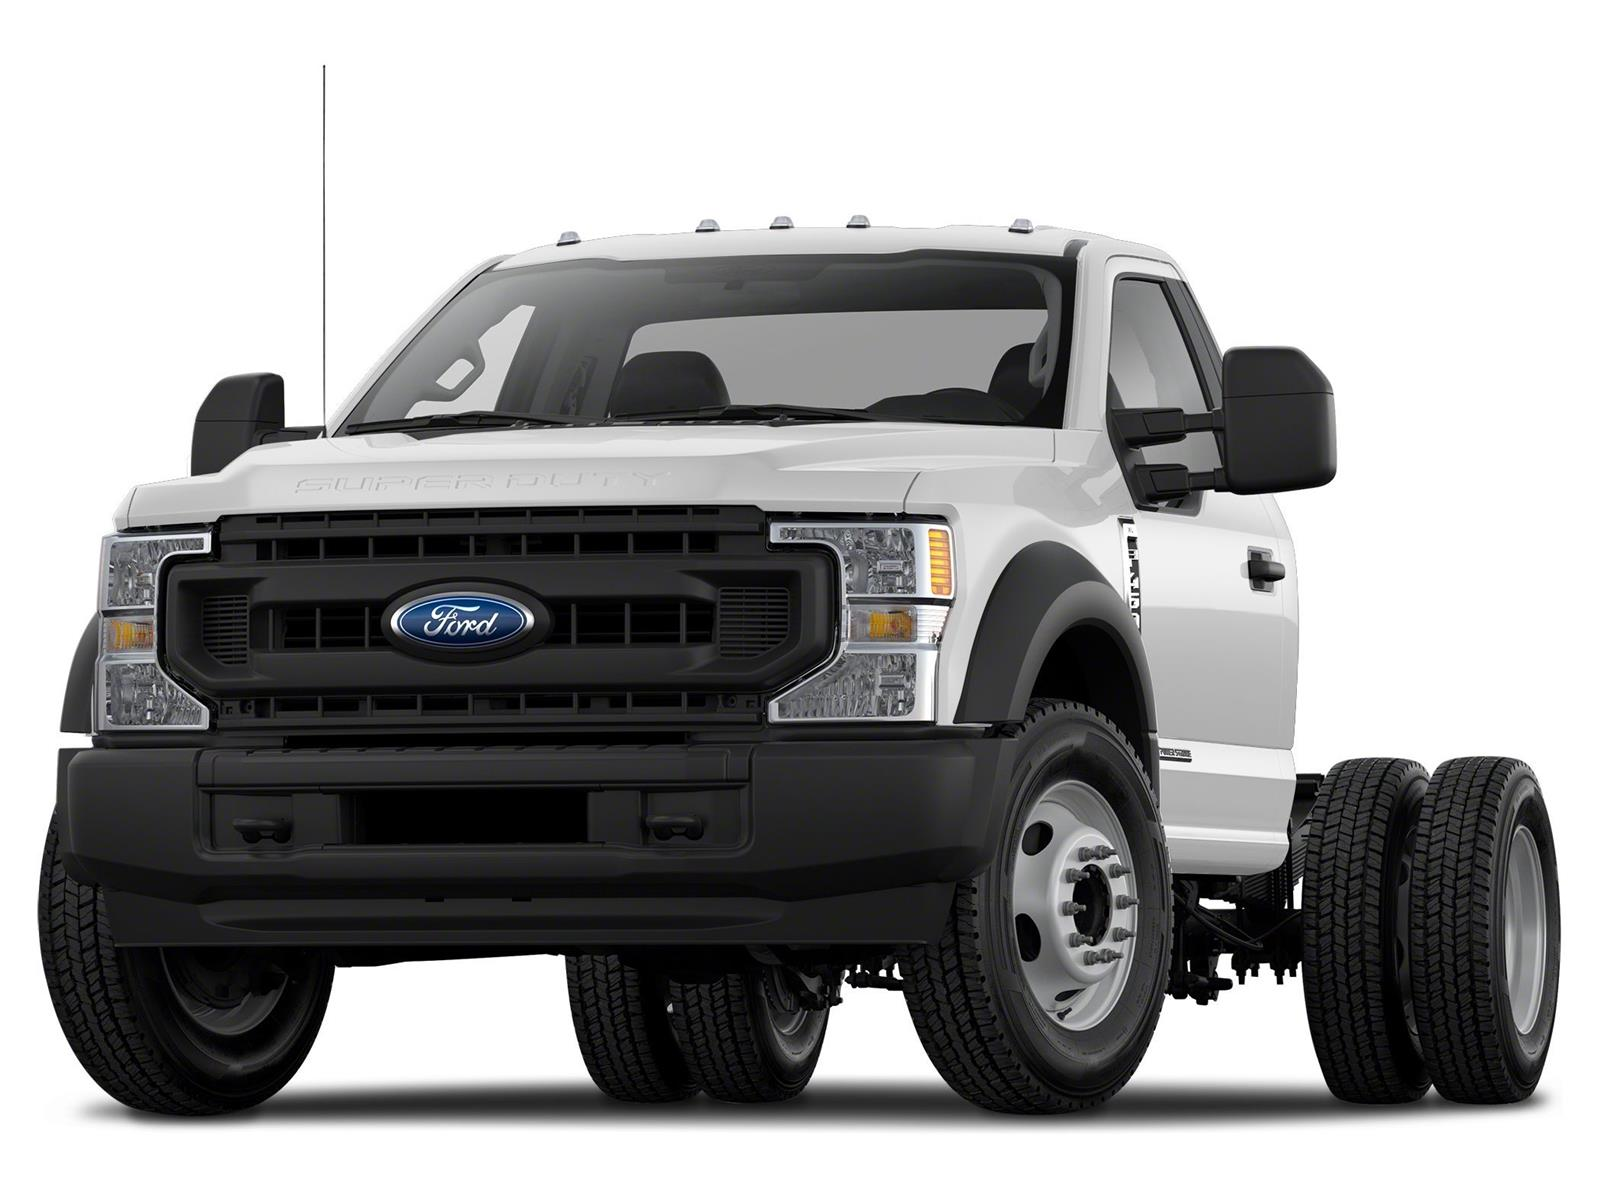 2020 Ford F-600 Regular Cab DRW 4x4, Cab Chassis #10861T - photo 1